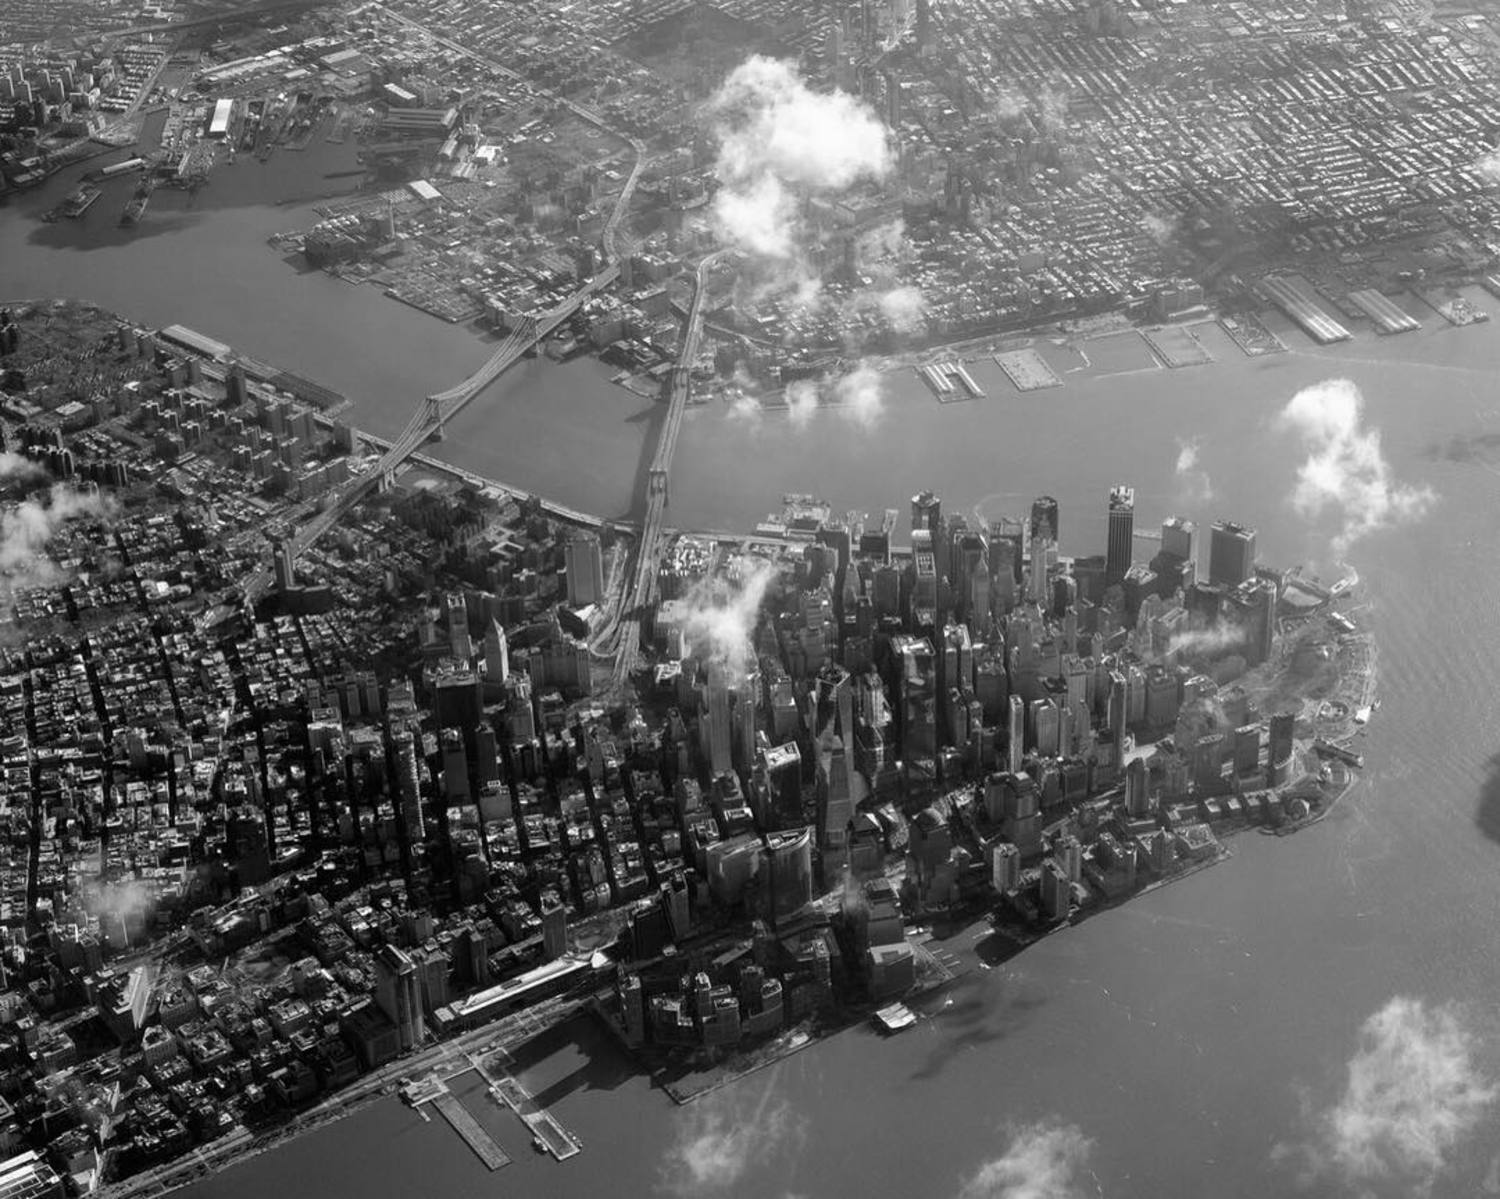 City of Dreams Manhattan . . . #VSCO #VSCOcam #MyFujifilm #NYC #NewYork #NewYorkCity #InstagramNYC #cityscape #architecture #landscape #travel #views #light #mood #blackandwhite #contrast #shootfilm #aerial #rooftopping #aerialview #outmywindow #skyview #aerialphotography #flight #helicopter #IloveNY #IloveNYC